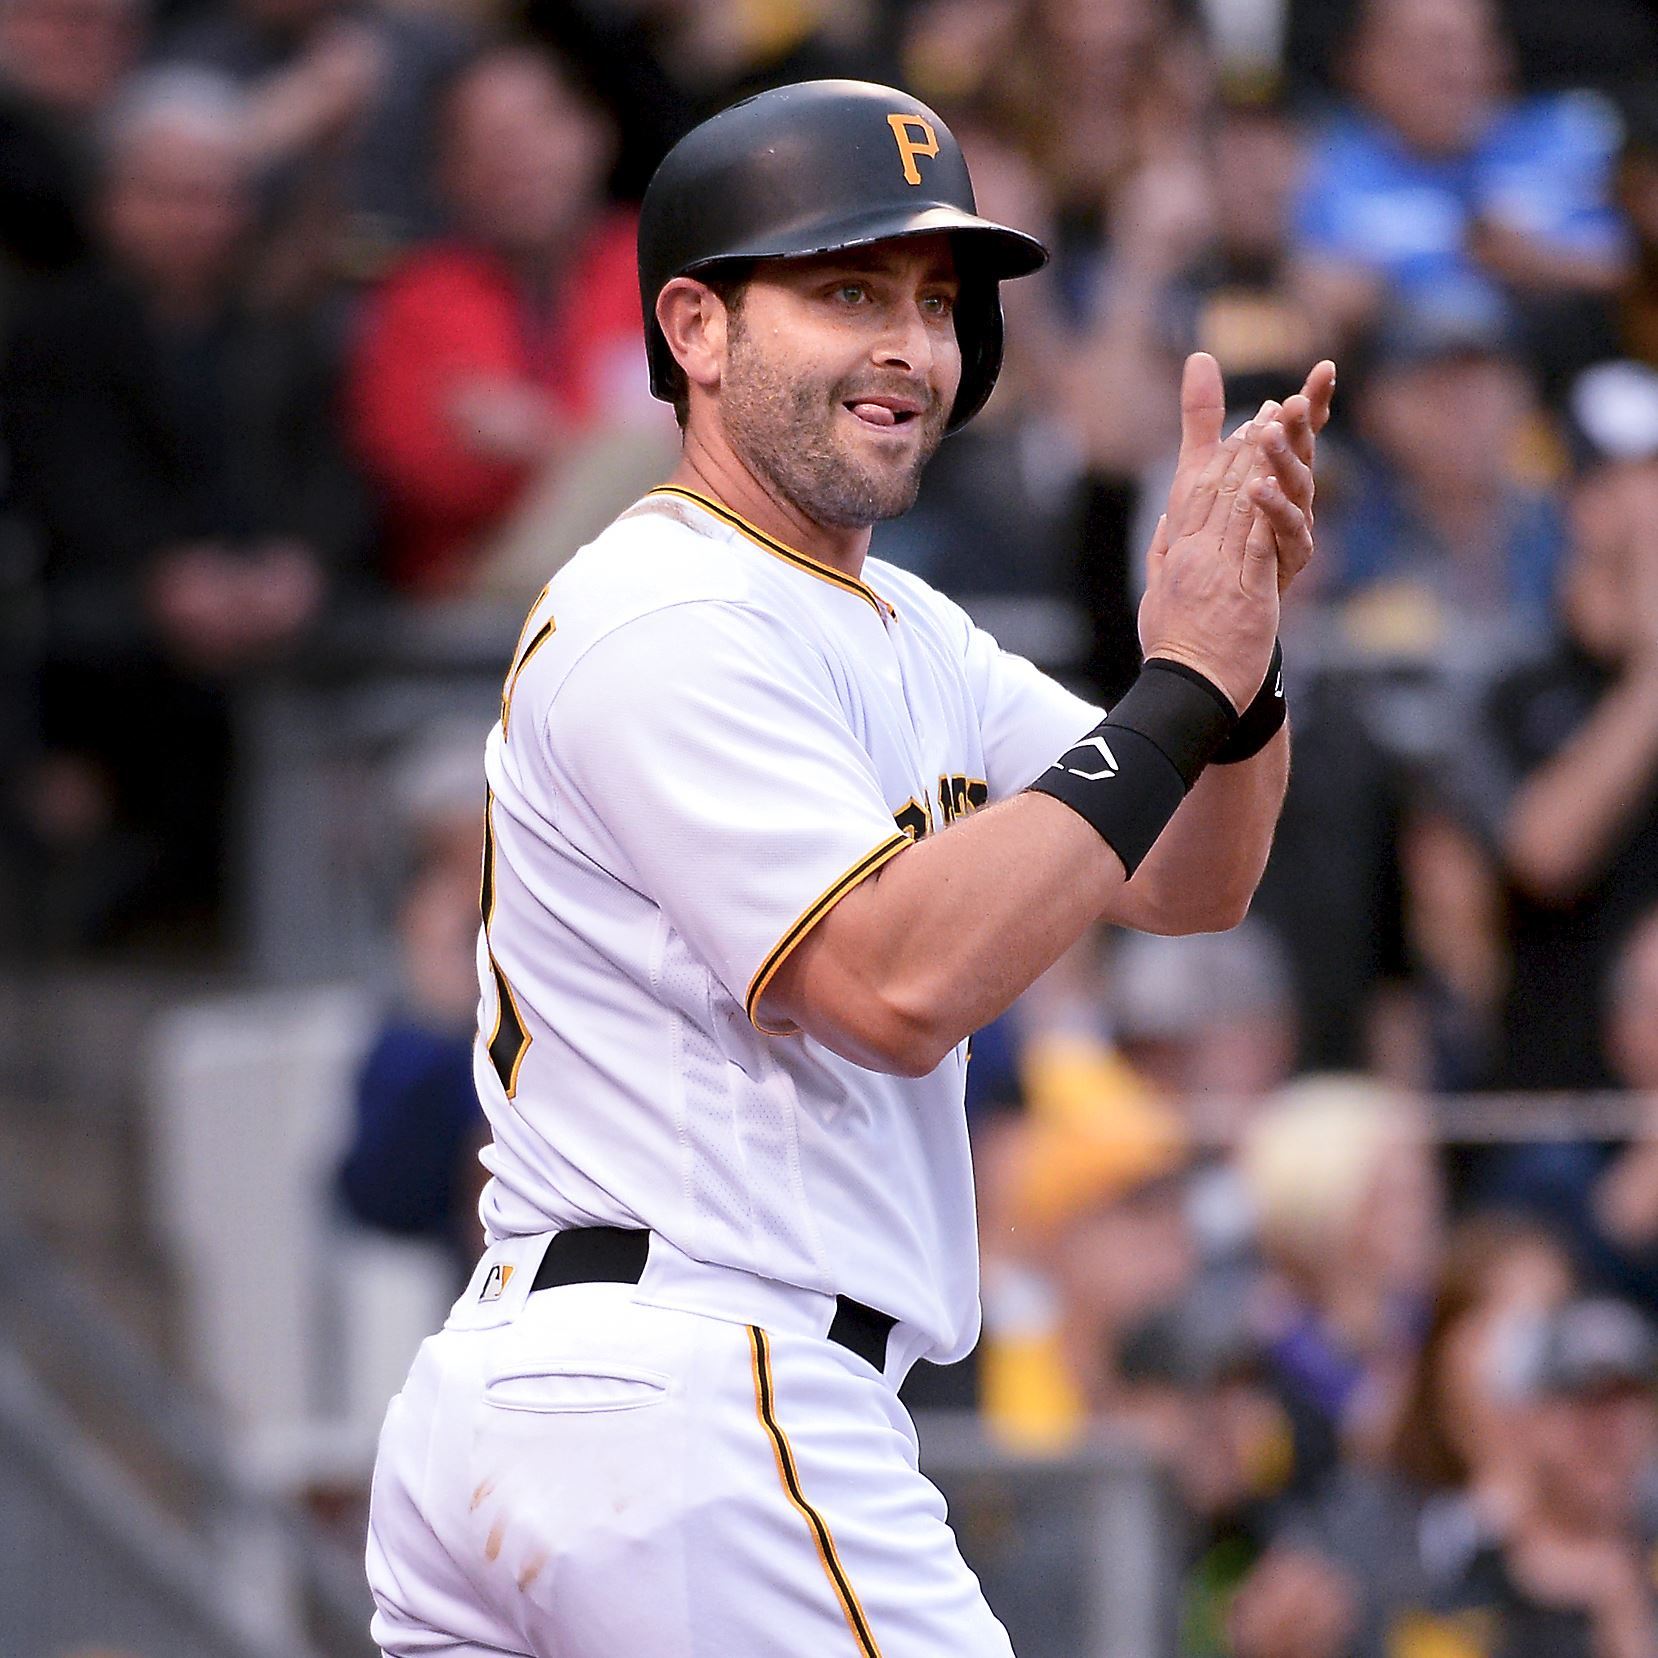 On The Pirates: With contract extension, Cervelli and team make a statement